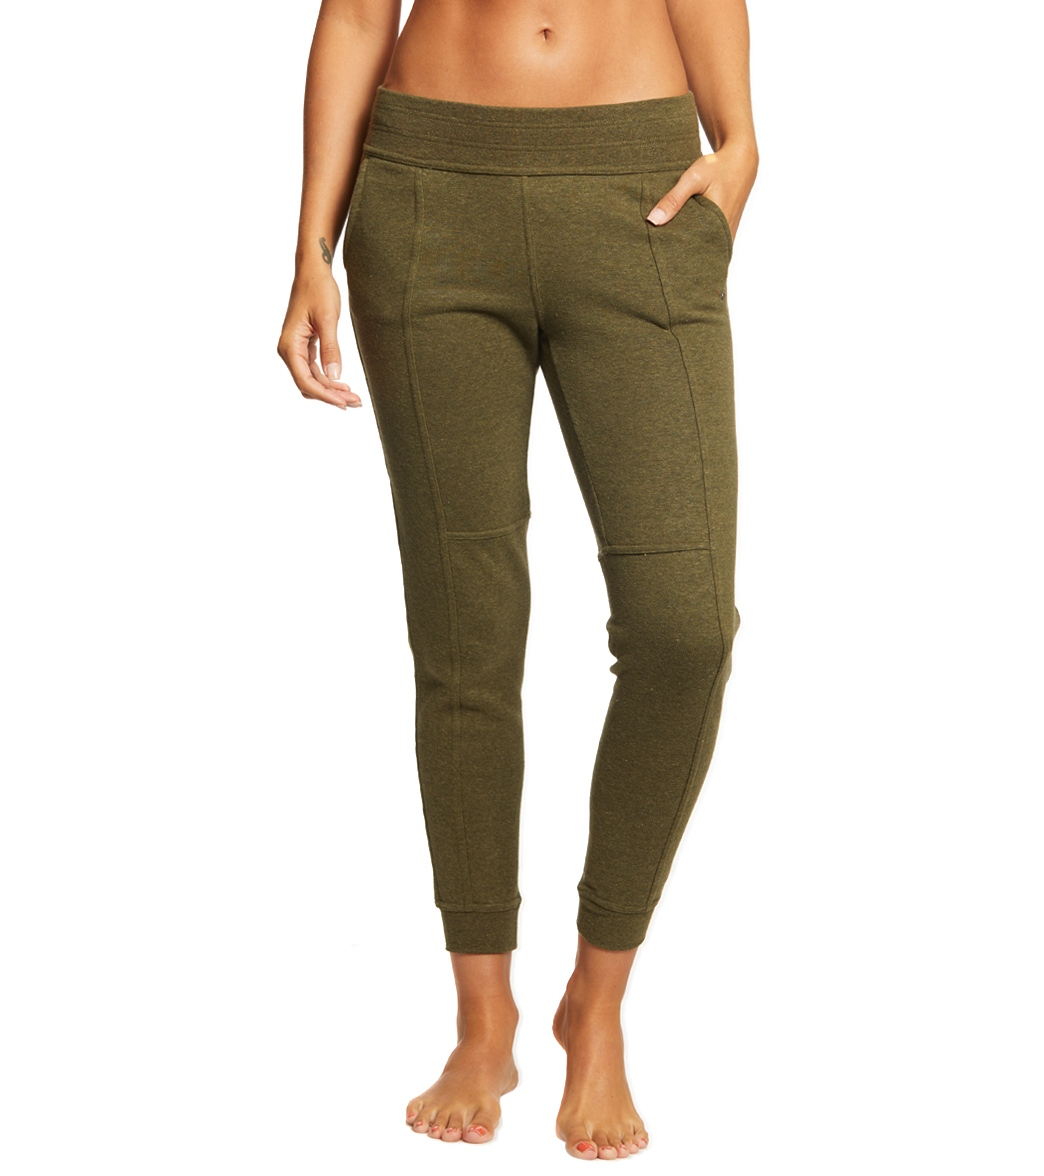 4d8a420816 Prana Cozy Up Pants at YogaOutlet.com - Free Shipping